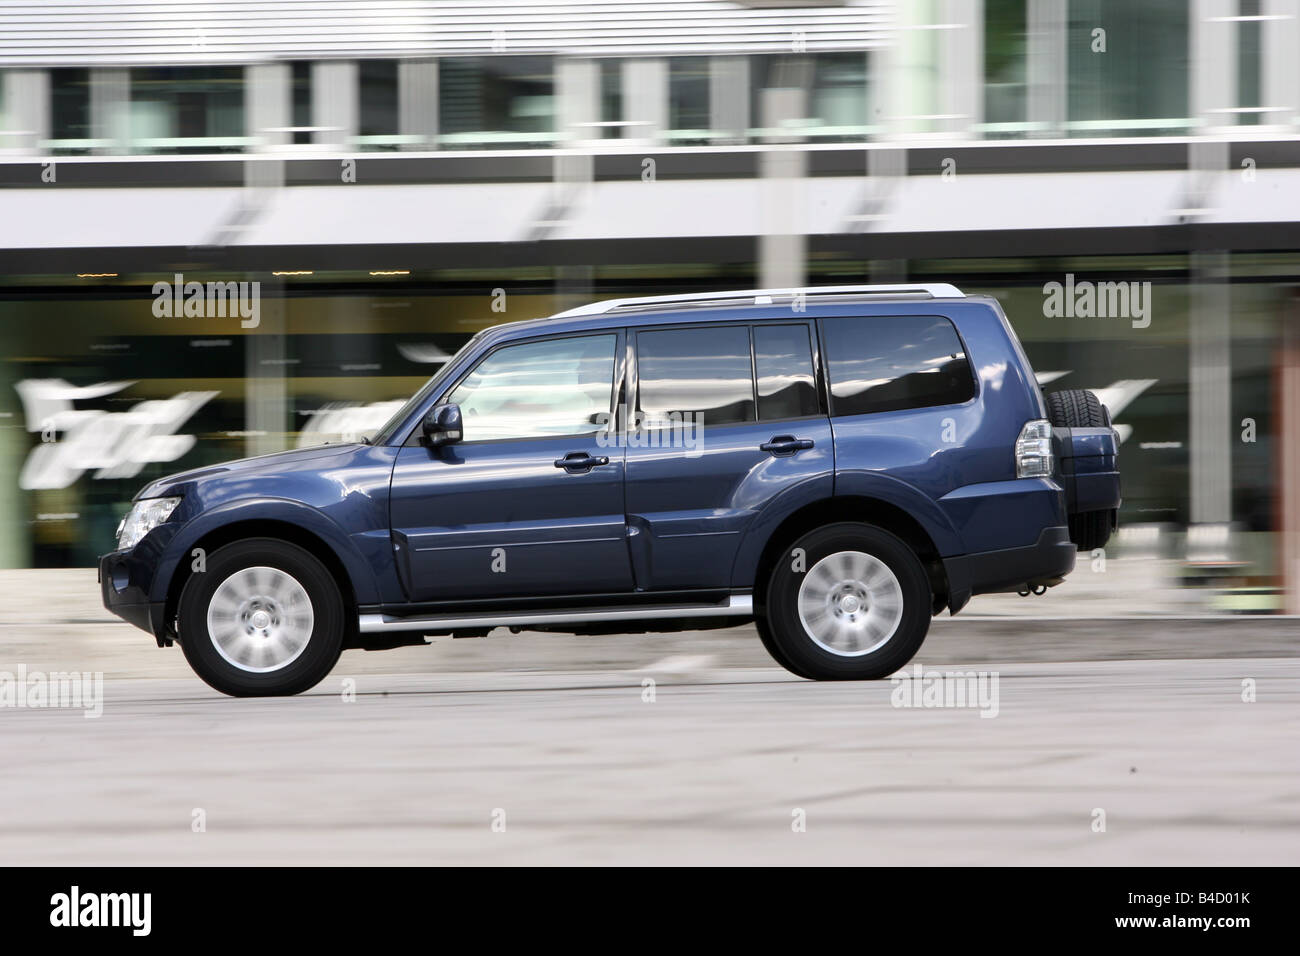 Mitsubishi Pajero 3,2 Instyle-Version, model year 2007-, dunkelblue moving, side view, City - Stock Image